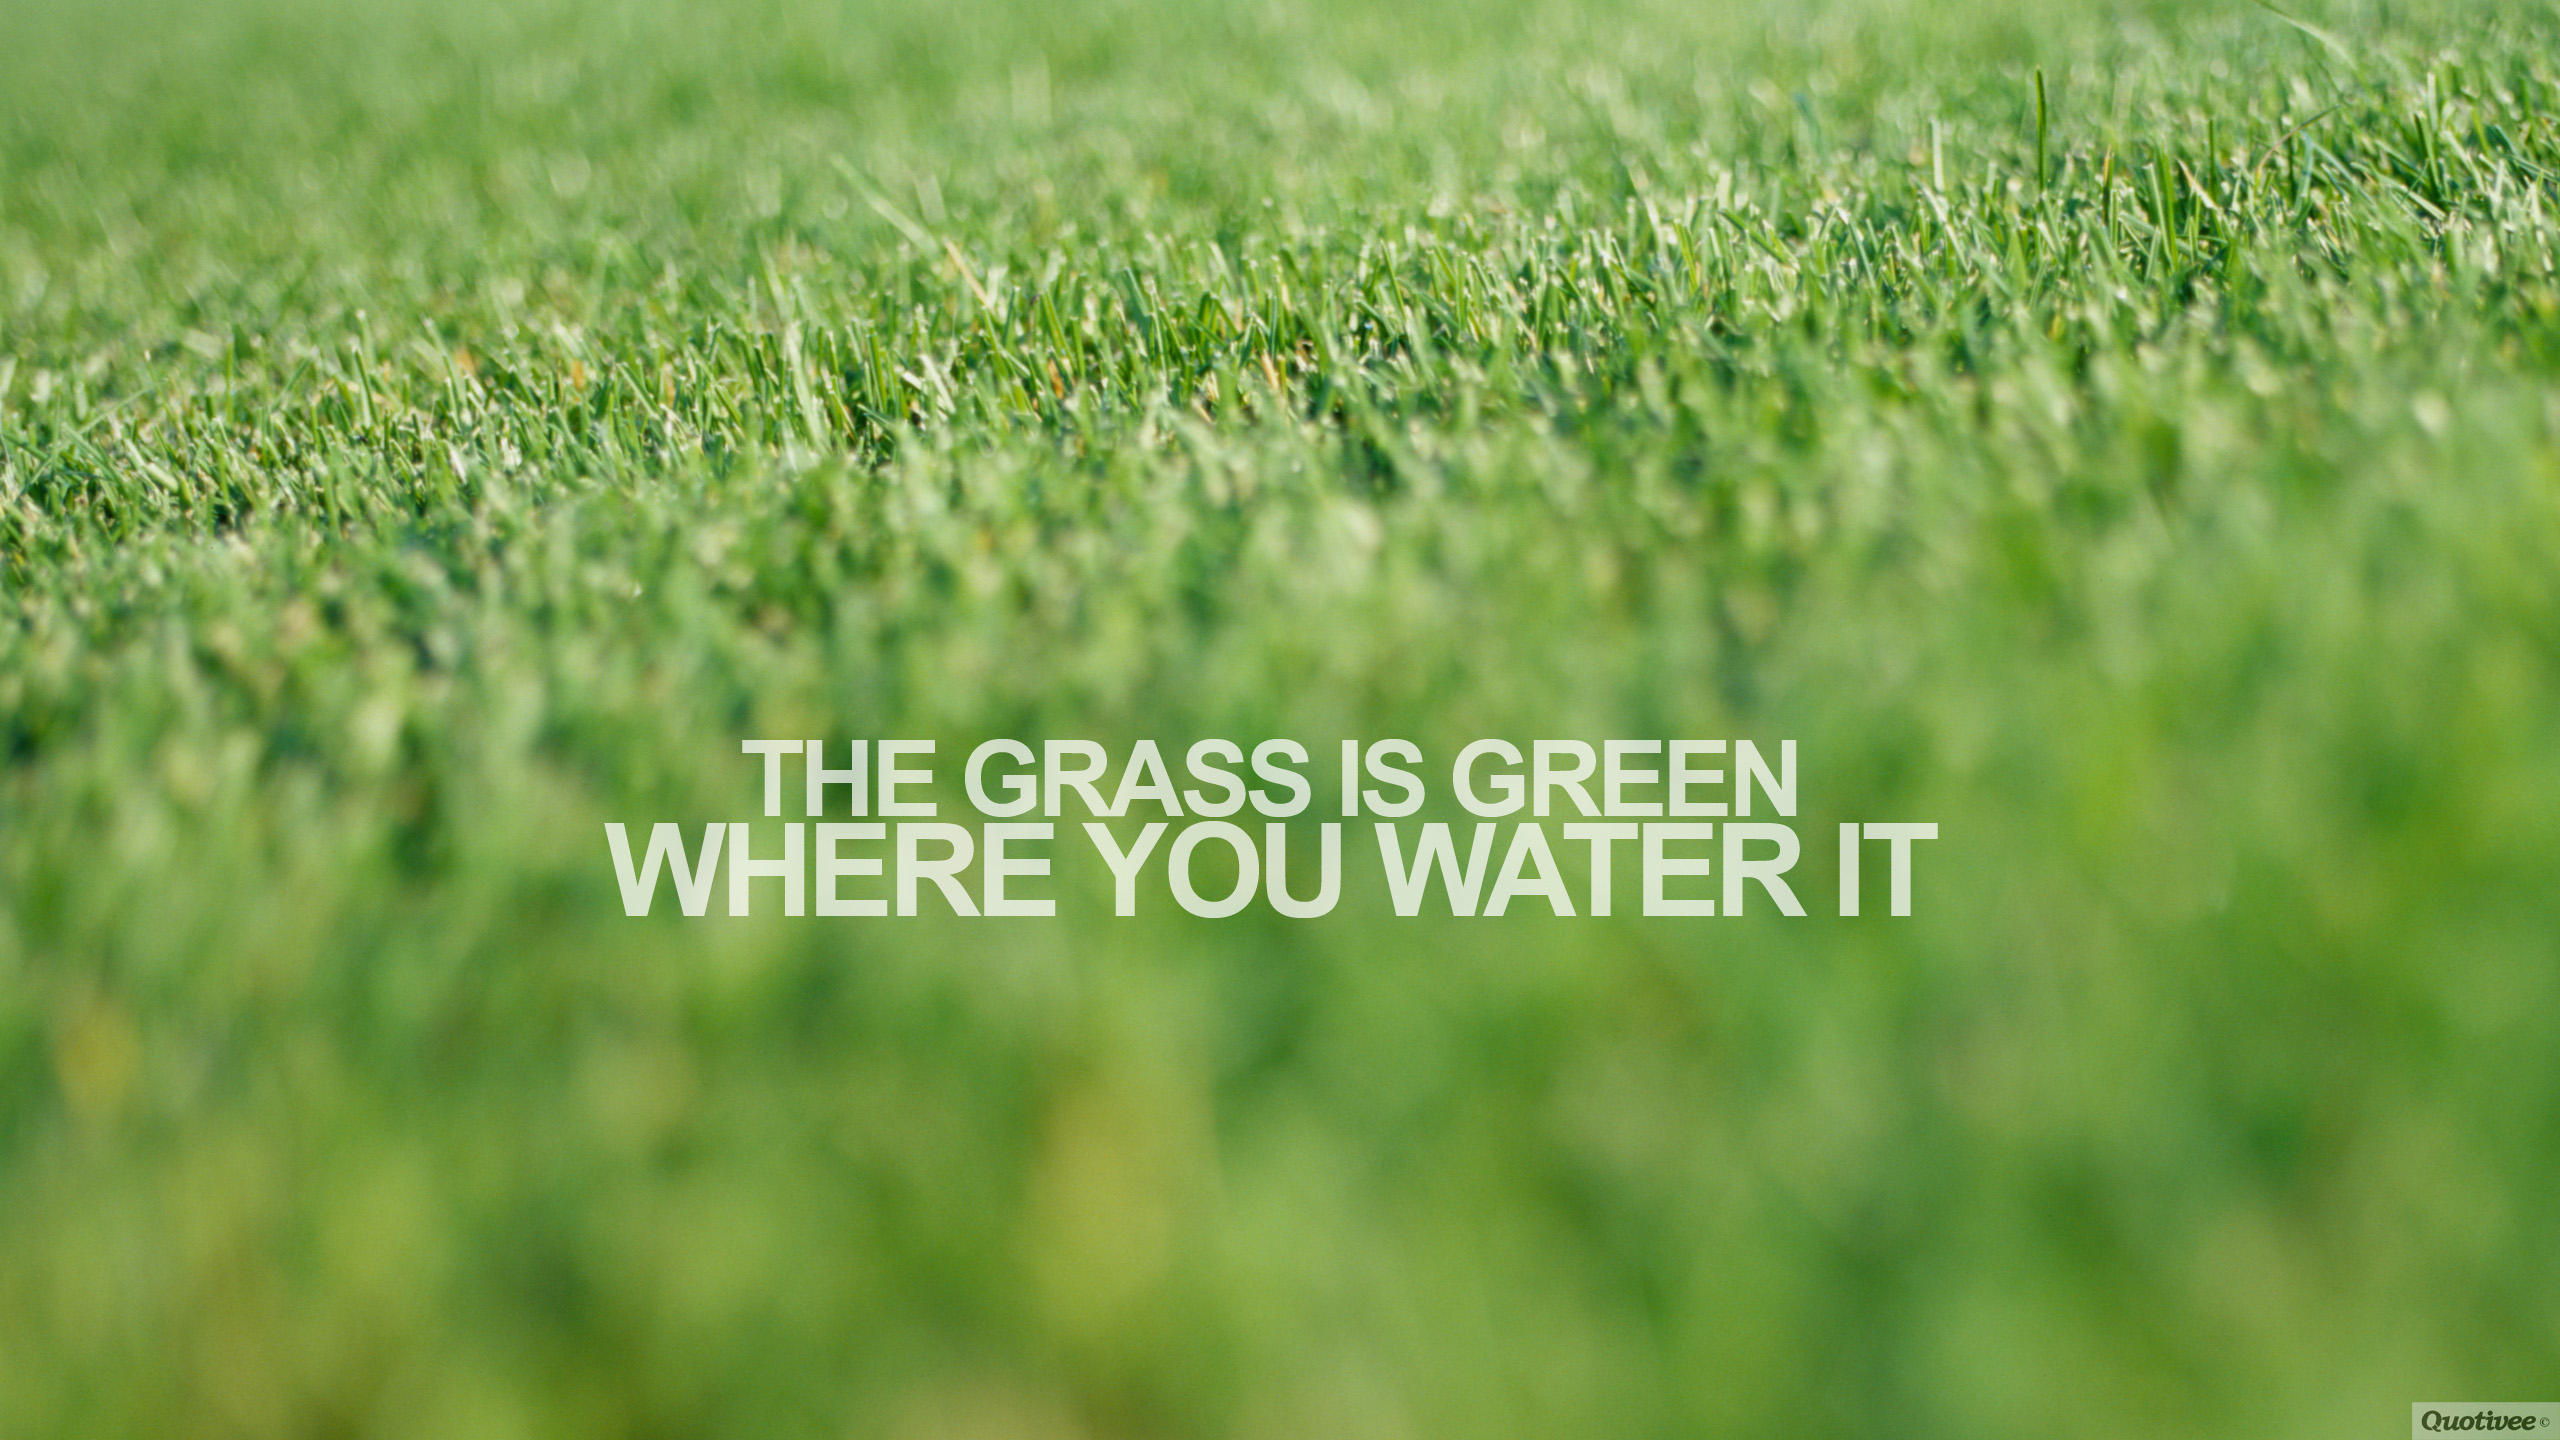 Grass Is Always Greener Quotes: The Grass Is Green - Inspirational Quotes